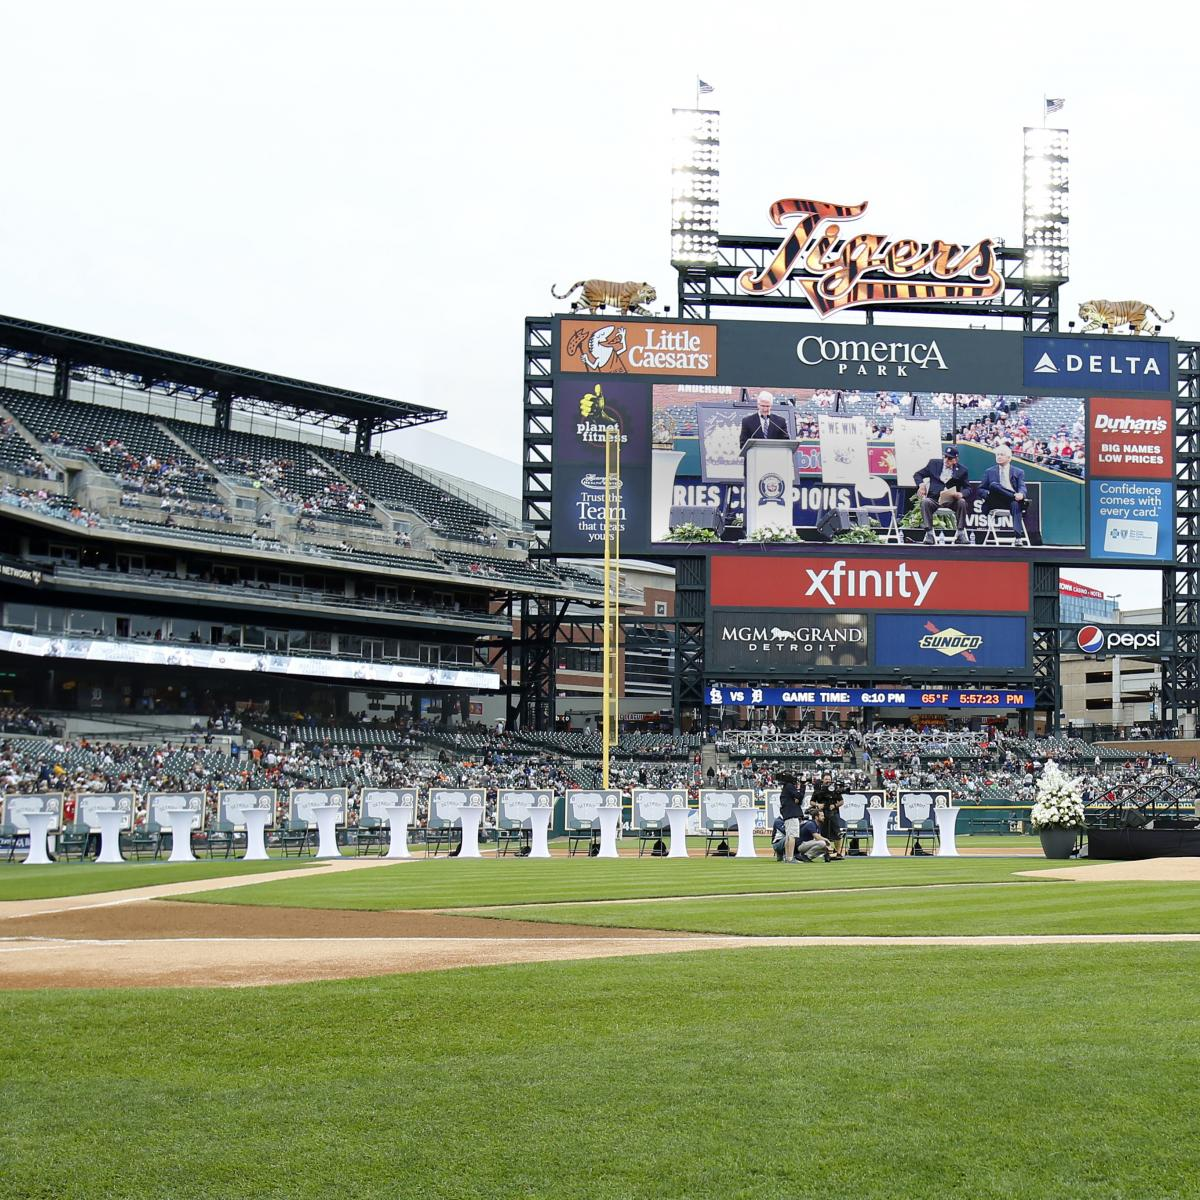 Comerica Park Detroit Michigan: Comerica Park Worker Charged After Video Appears To Show